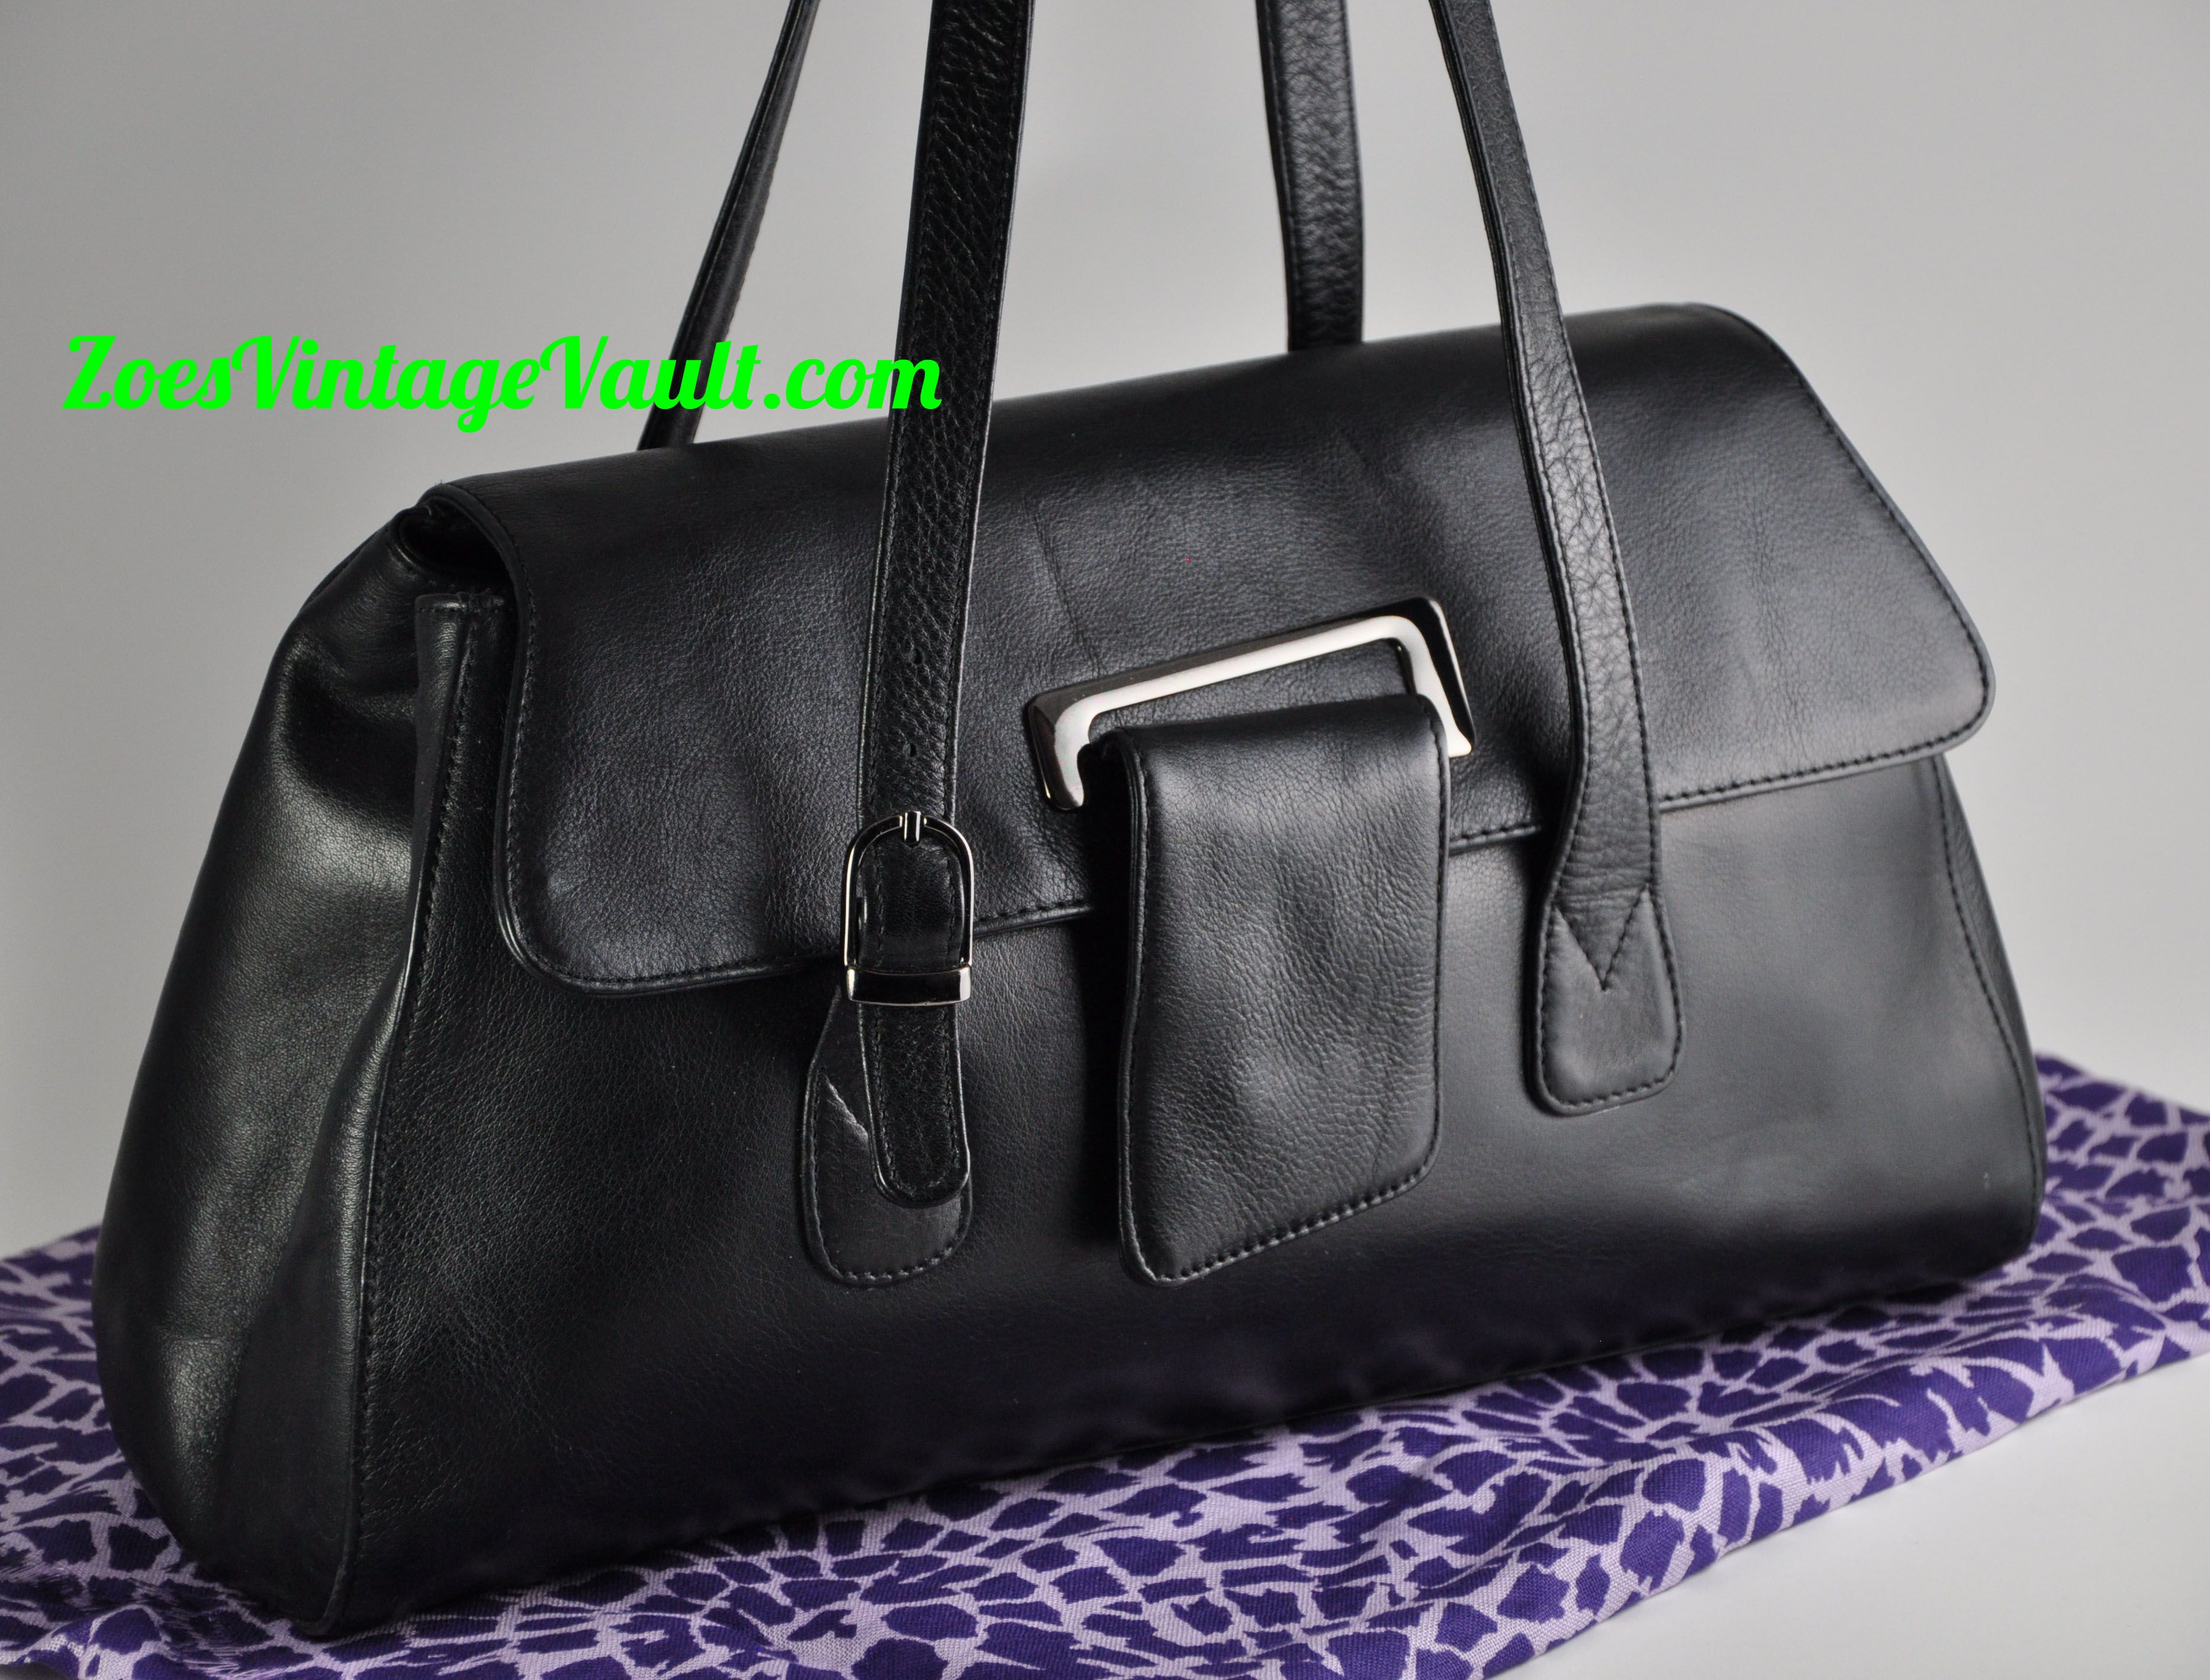 Black vintage leather satchel | Streetstyle carryall bag at zoesvintagevault #satchel #leather #vintage #streetstyle #bag #carryall #zoesvintagevault #zoesvintage pinterest.com/zoesvintage/bags-bags-more-bags/